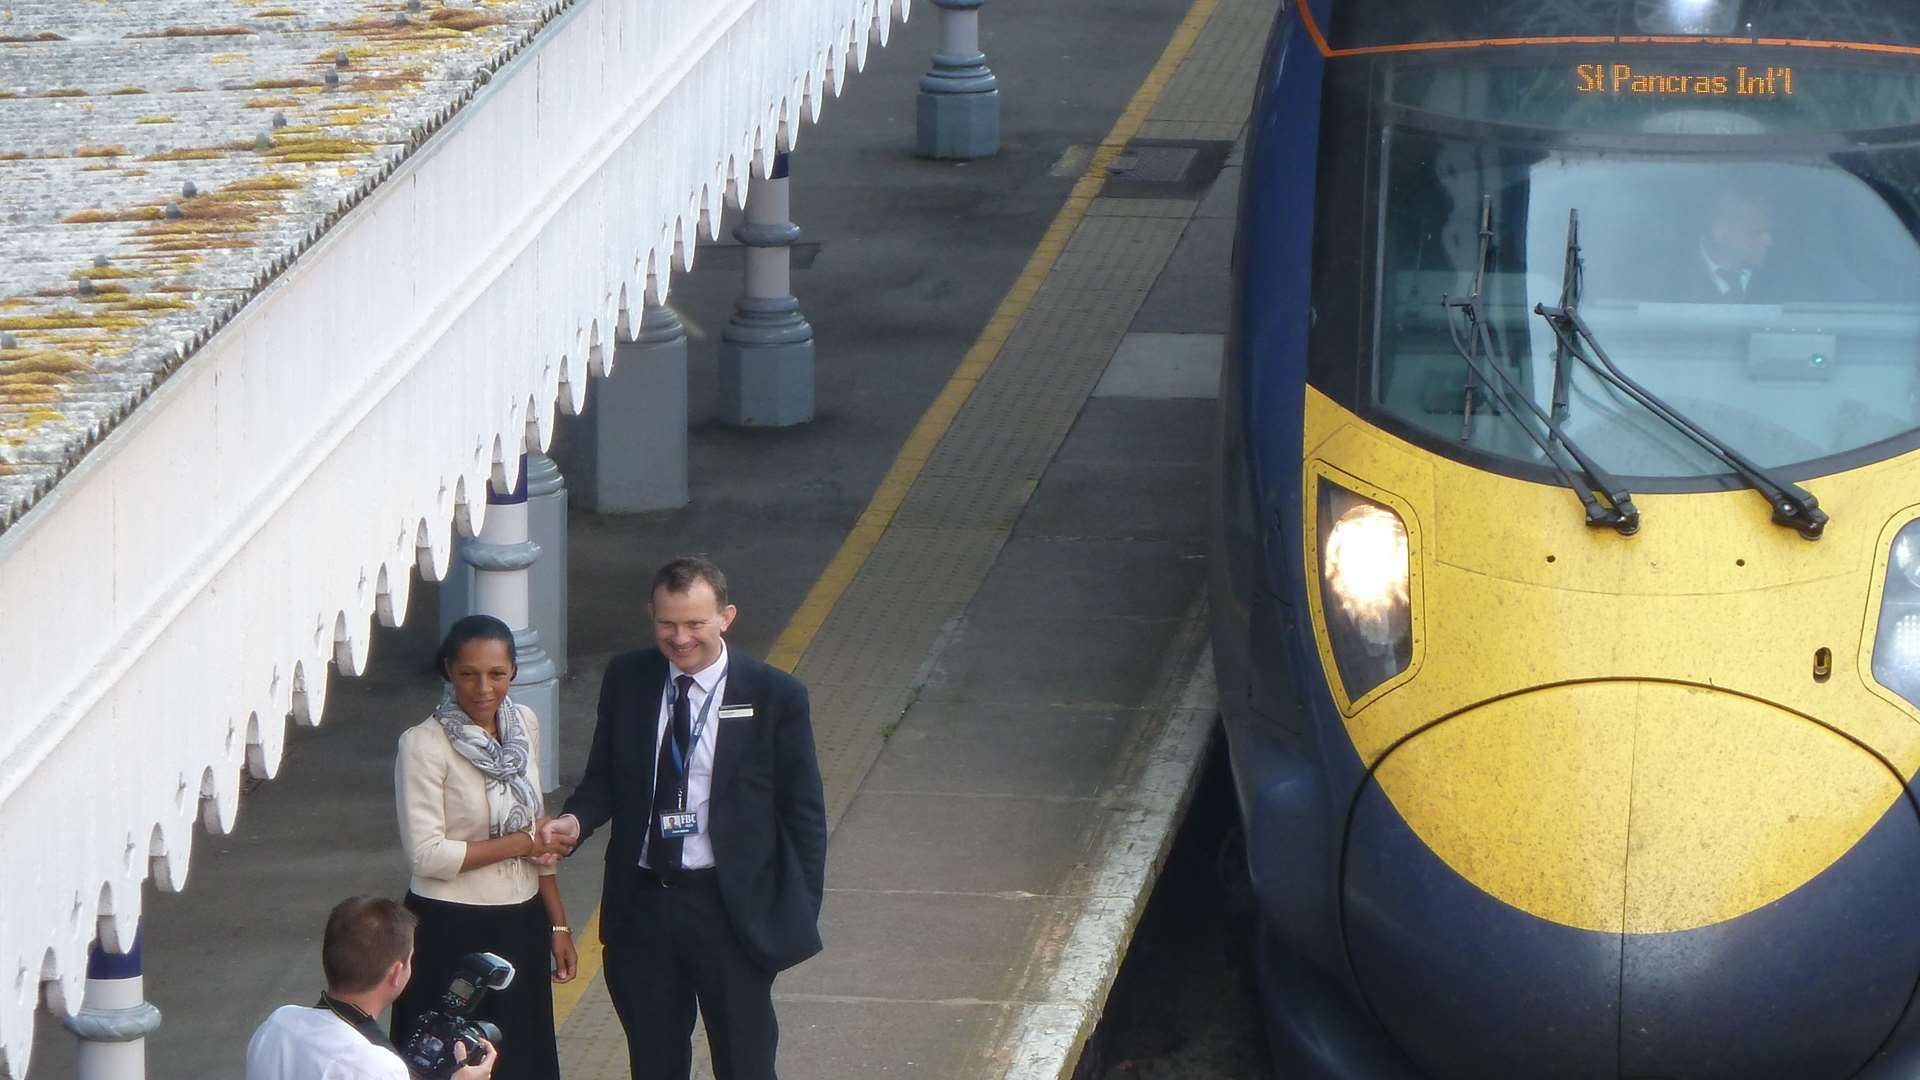 Helen Grant at the launch of Maidstone's high-speed service in 2011.